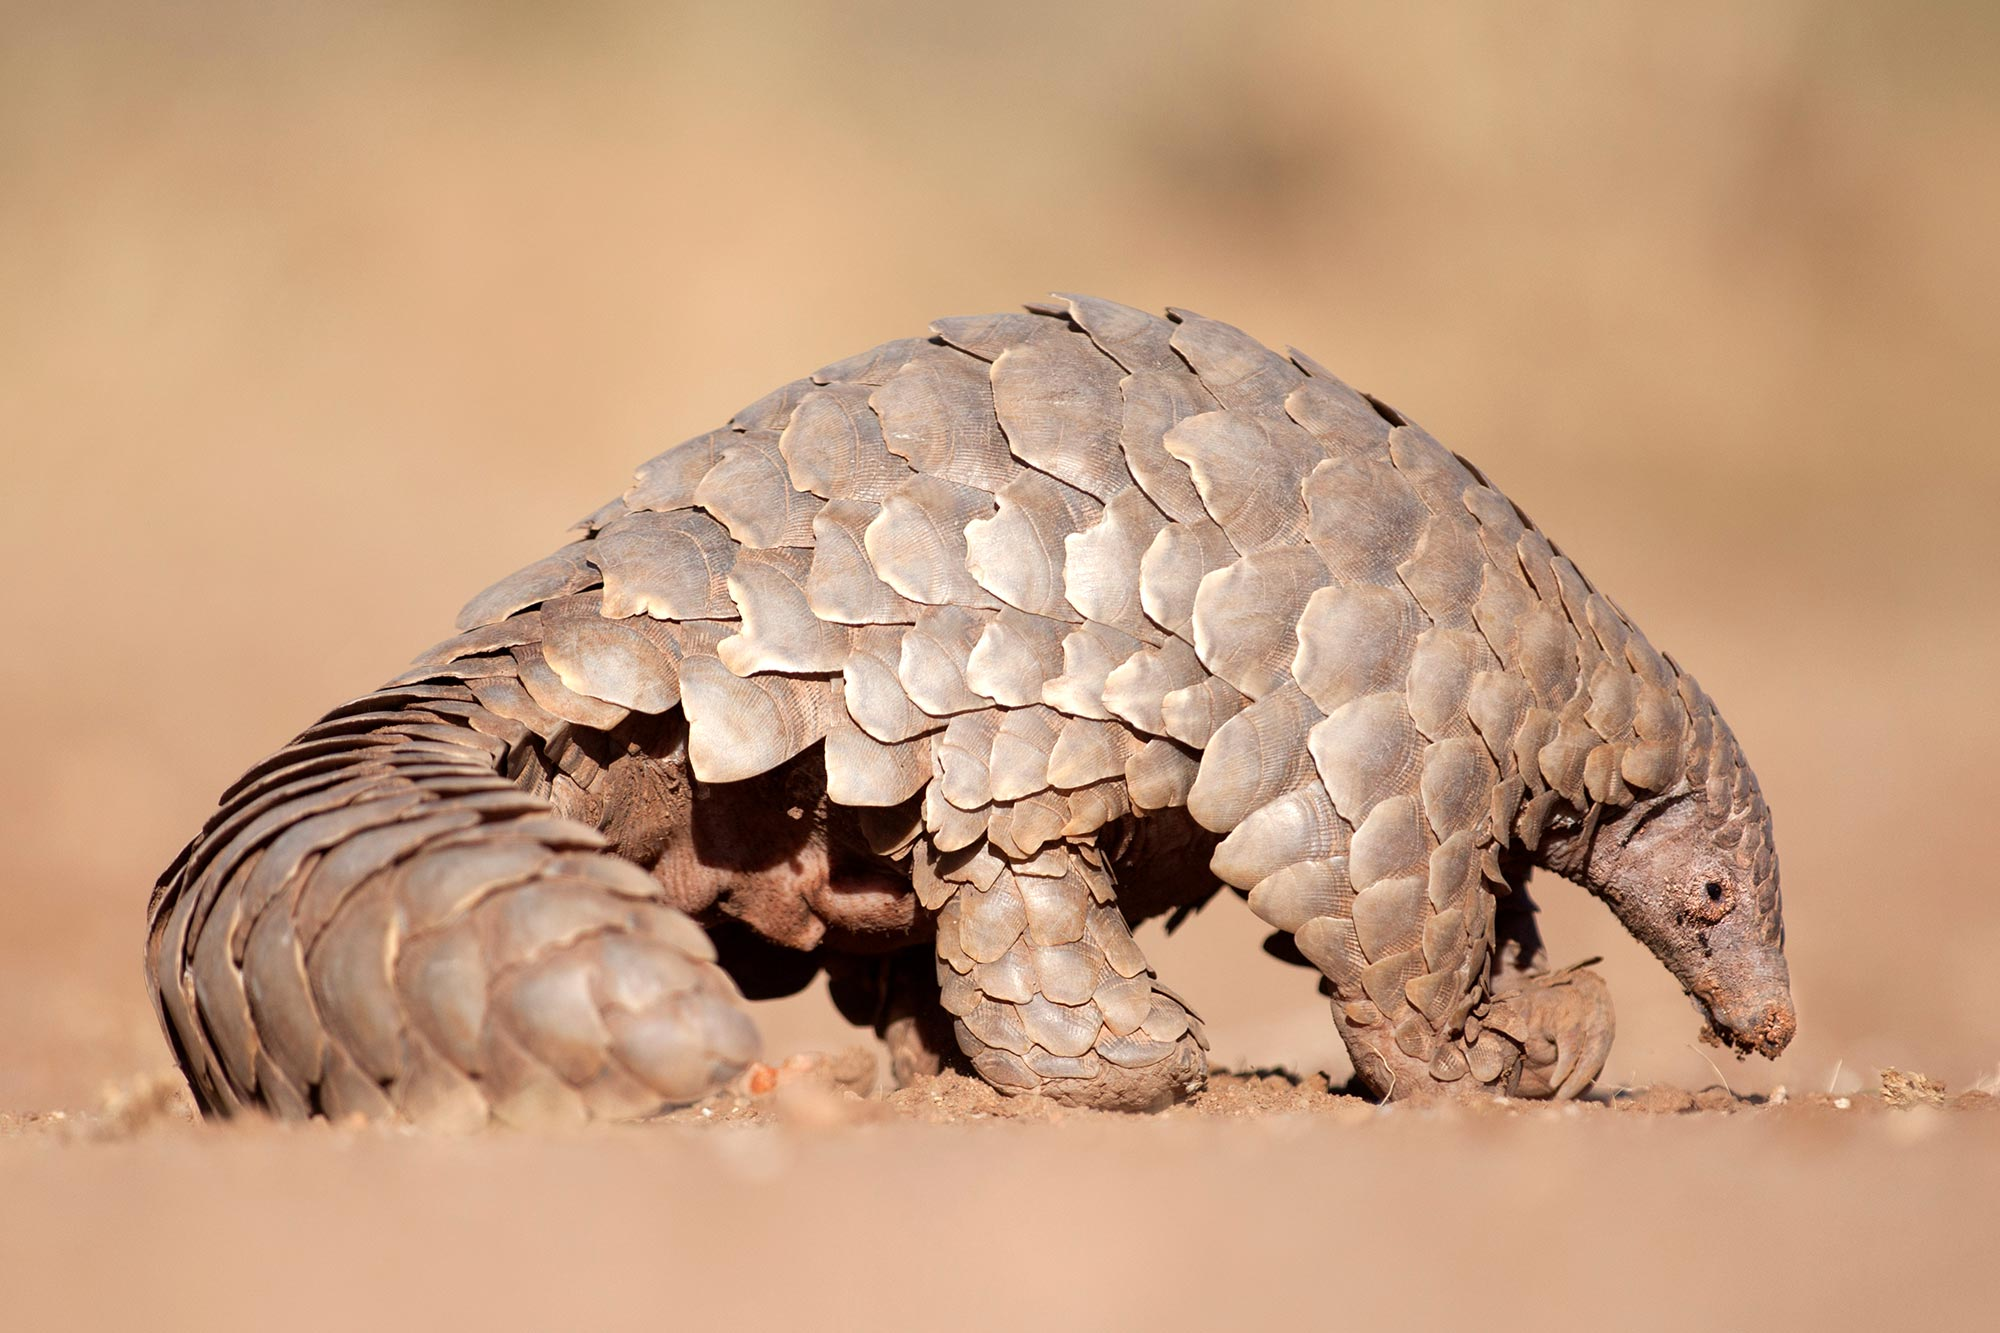 Pangolins should be considered possible hosts of coronavirus, scientists say